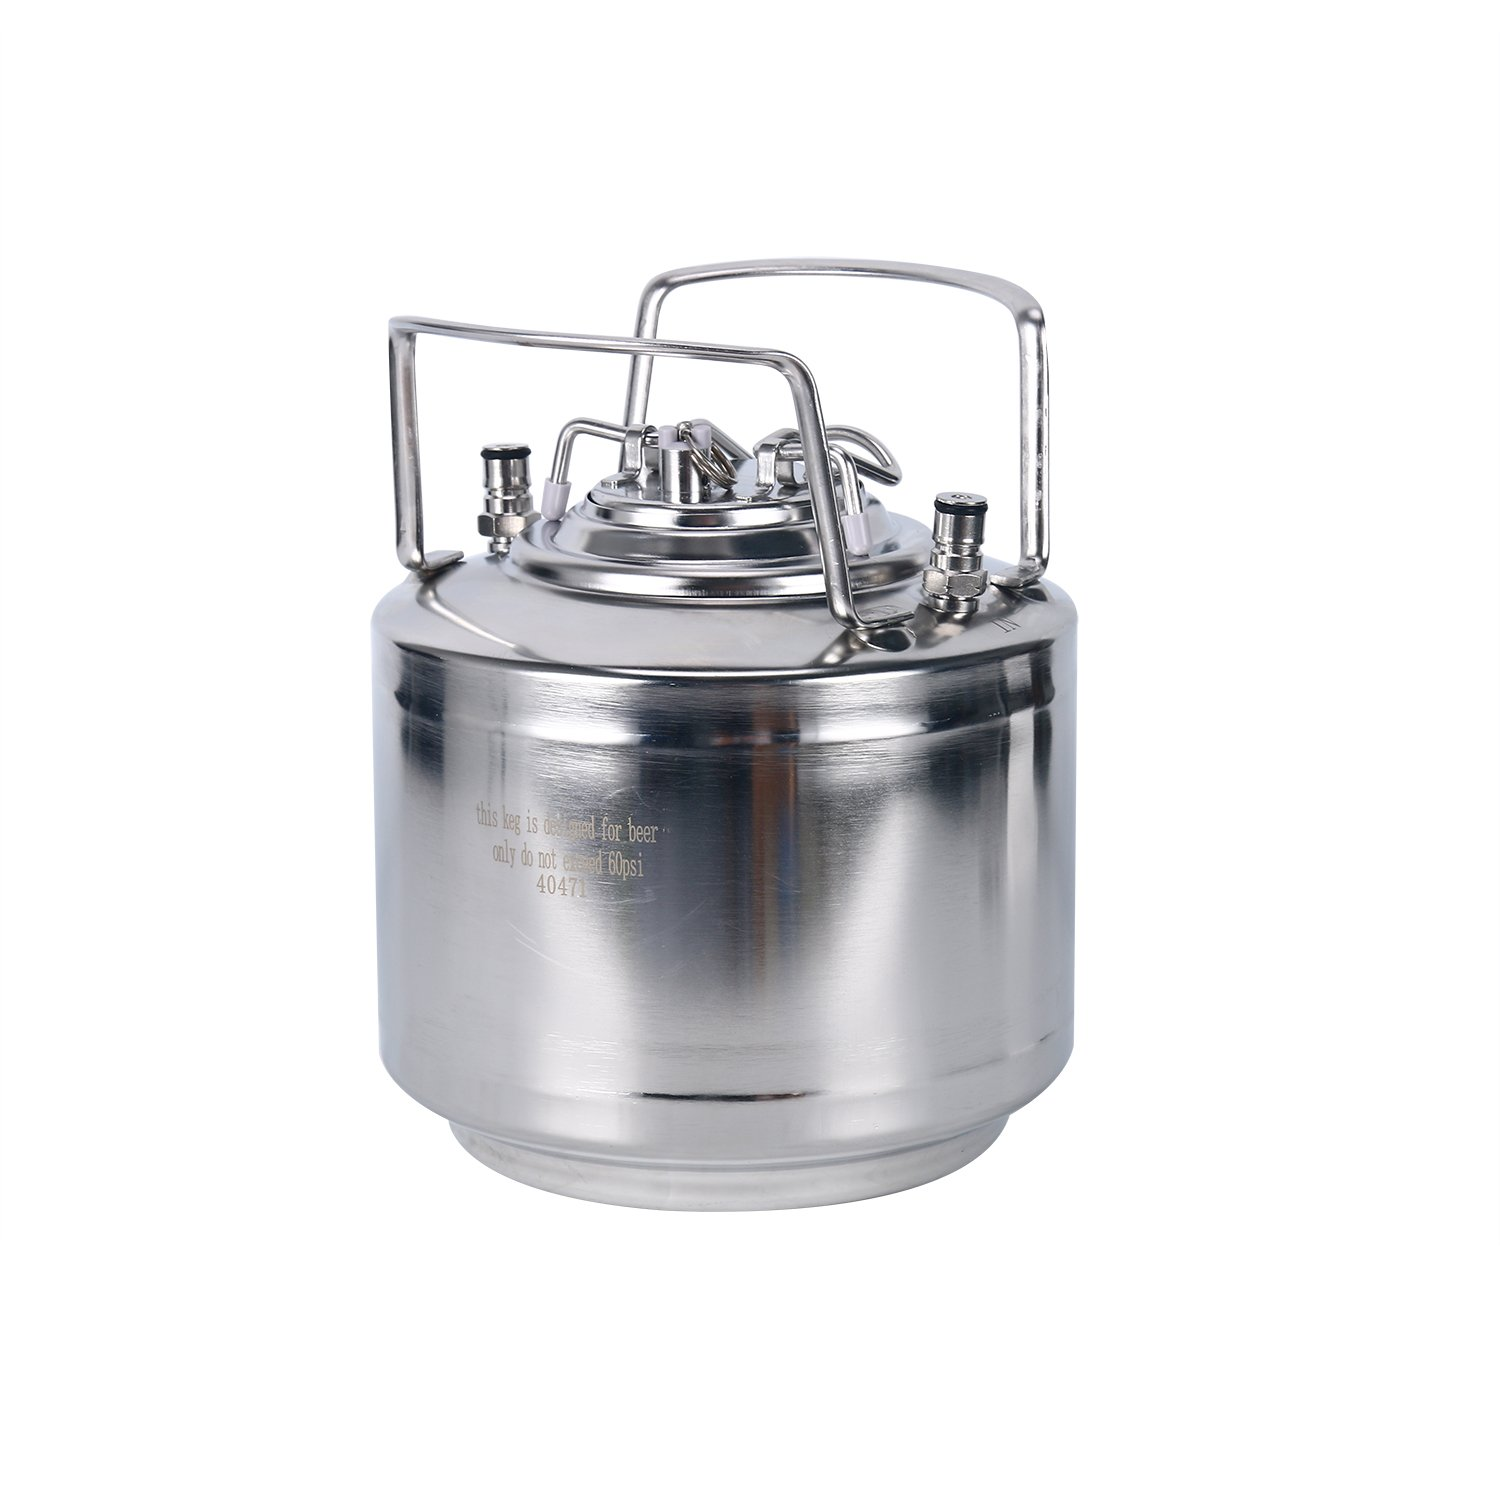 YaeBrew Stainless Steel 1.6 Gallon Mini Ball Lock Keg System For Small Batch HomeBrewing Beer Brewing Strap Handle (6L)